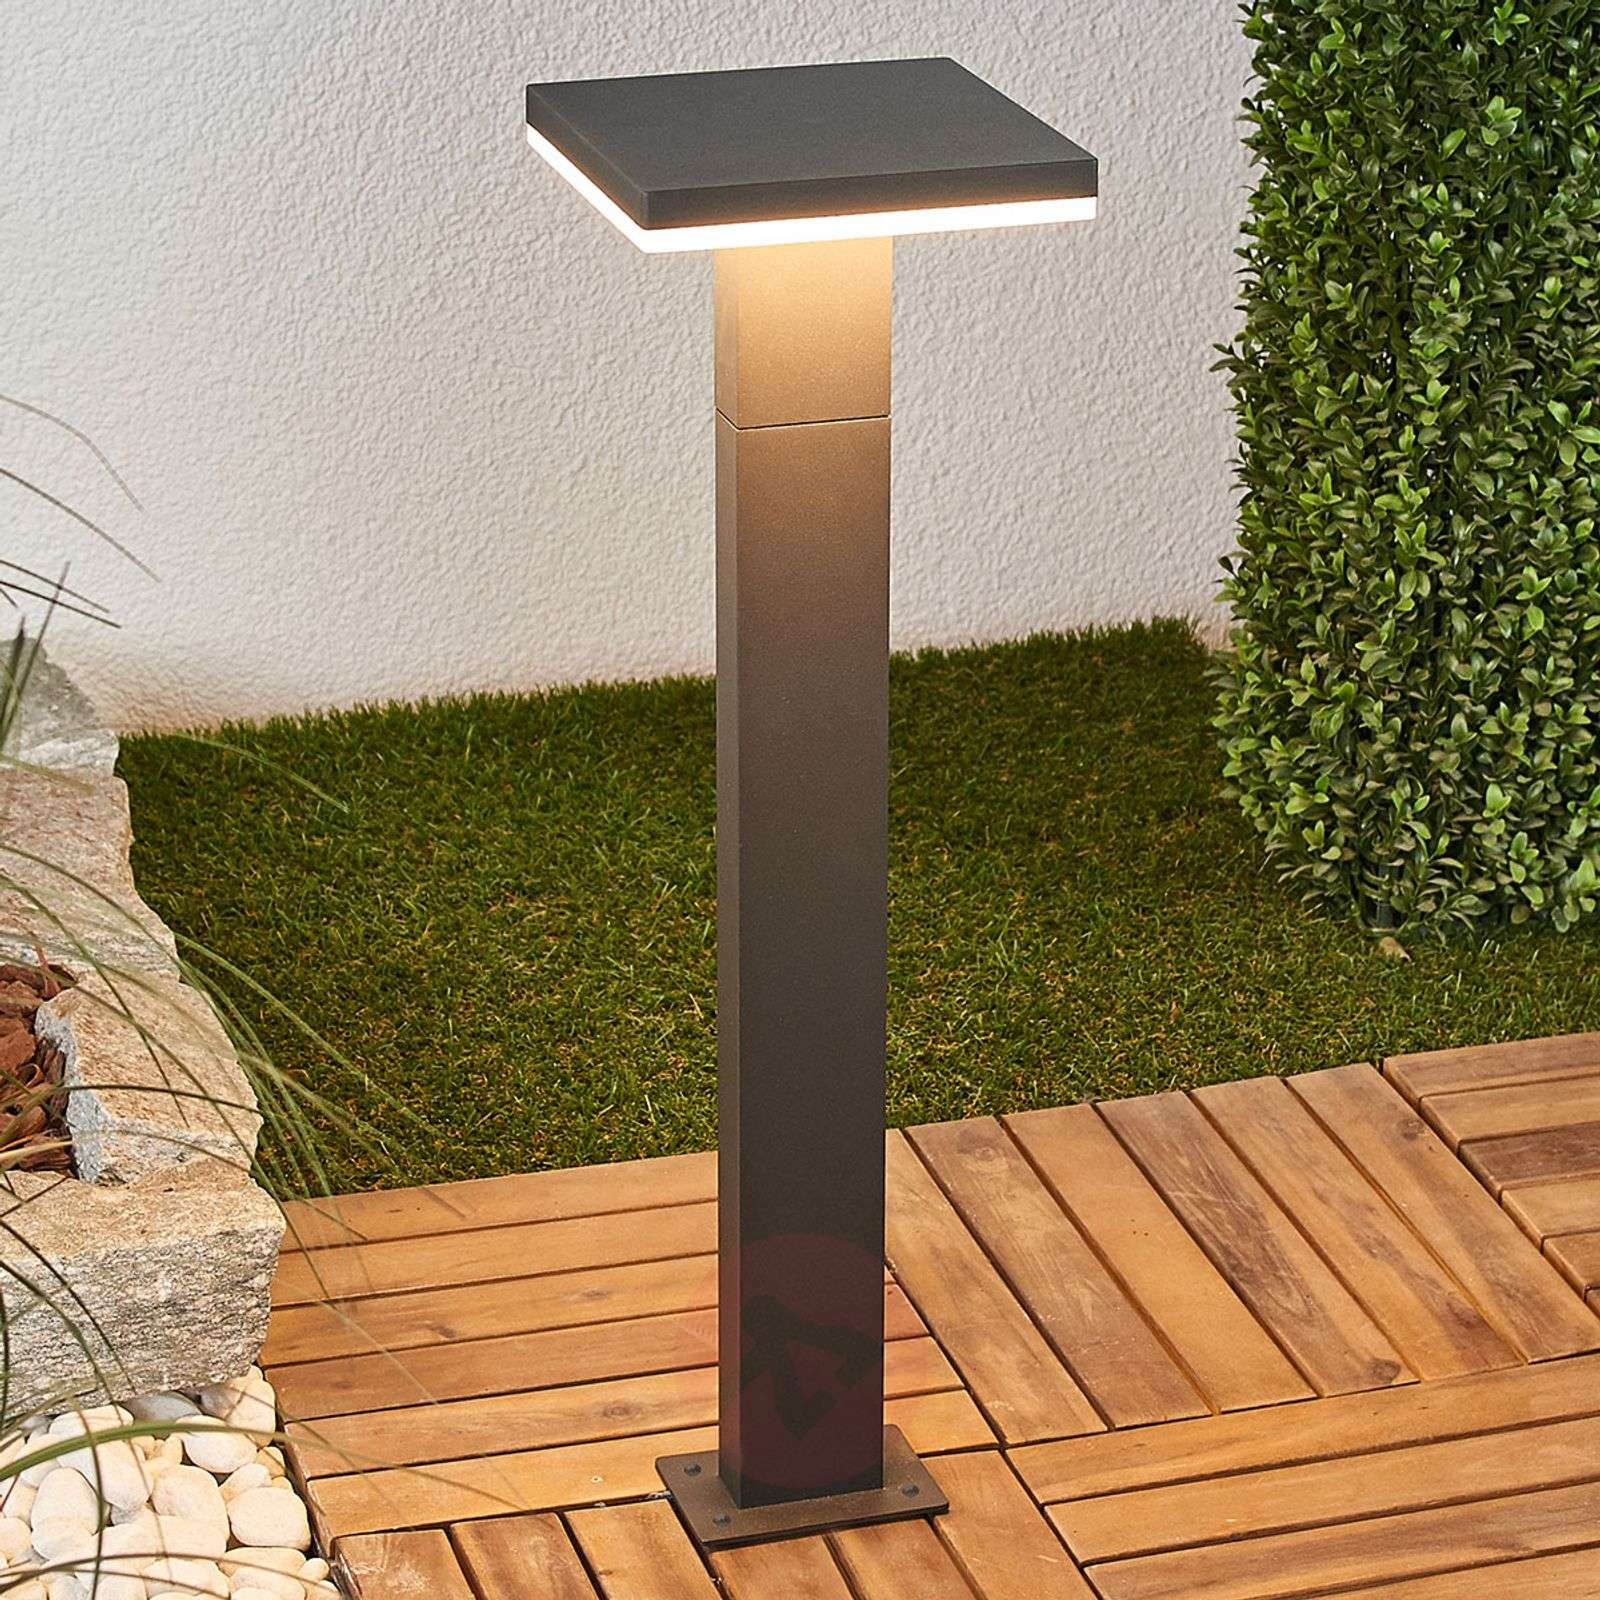 Olesia LED tuinpad verlichting in donkergrijs-9619141-03